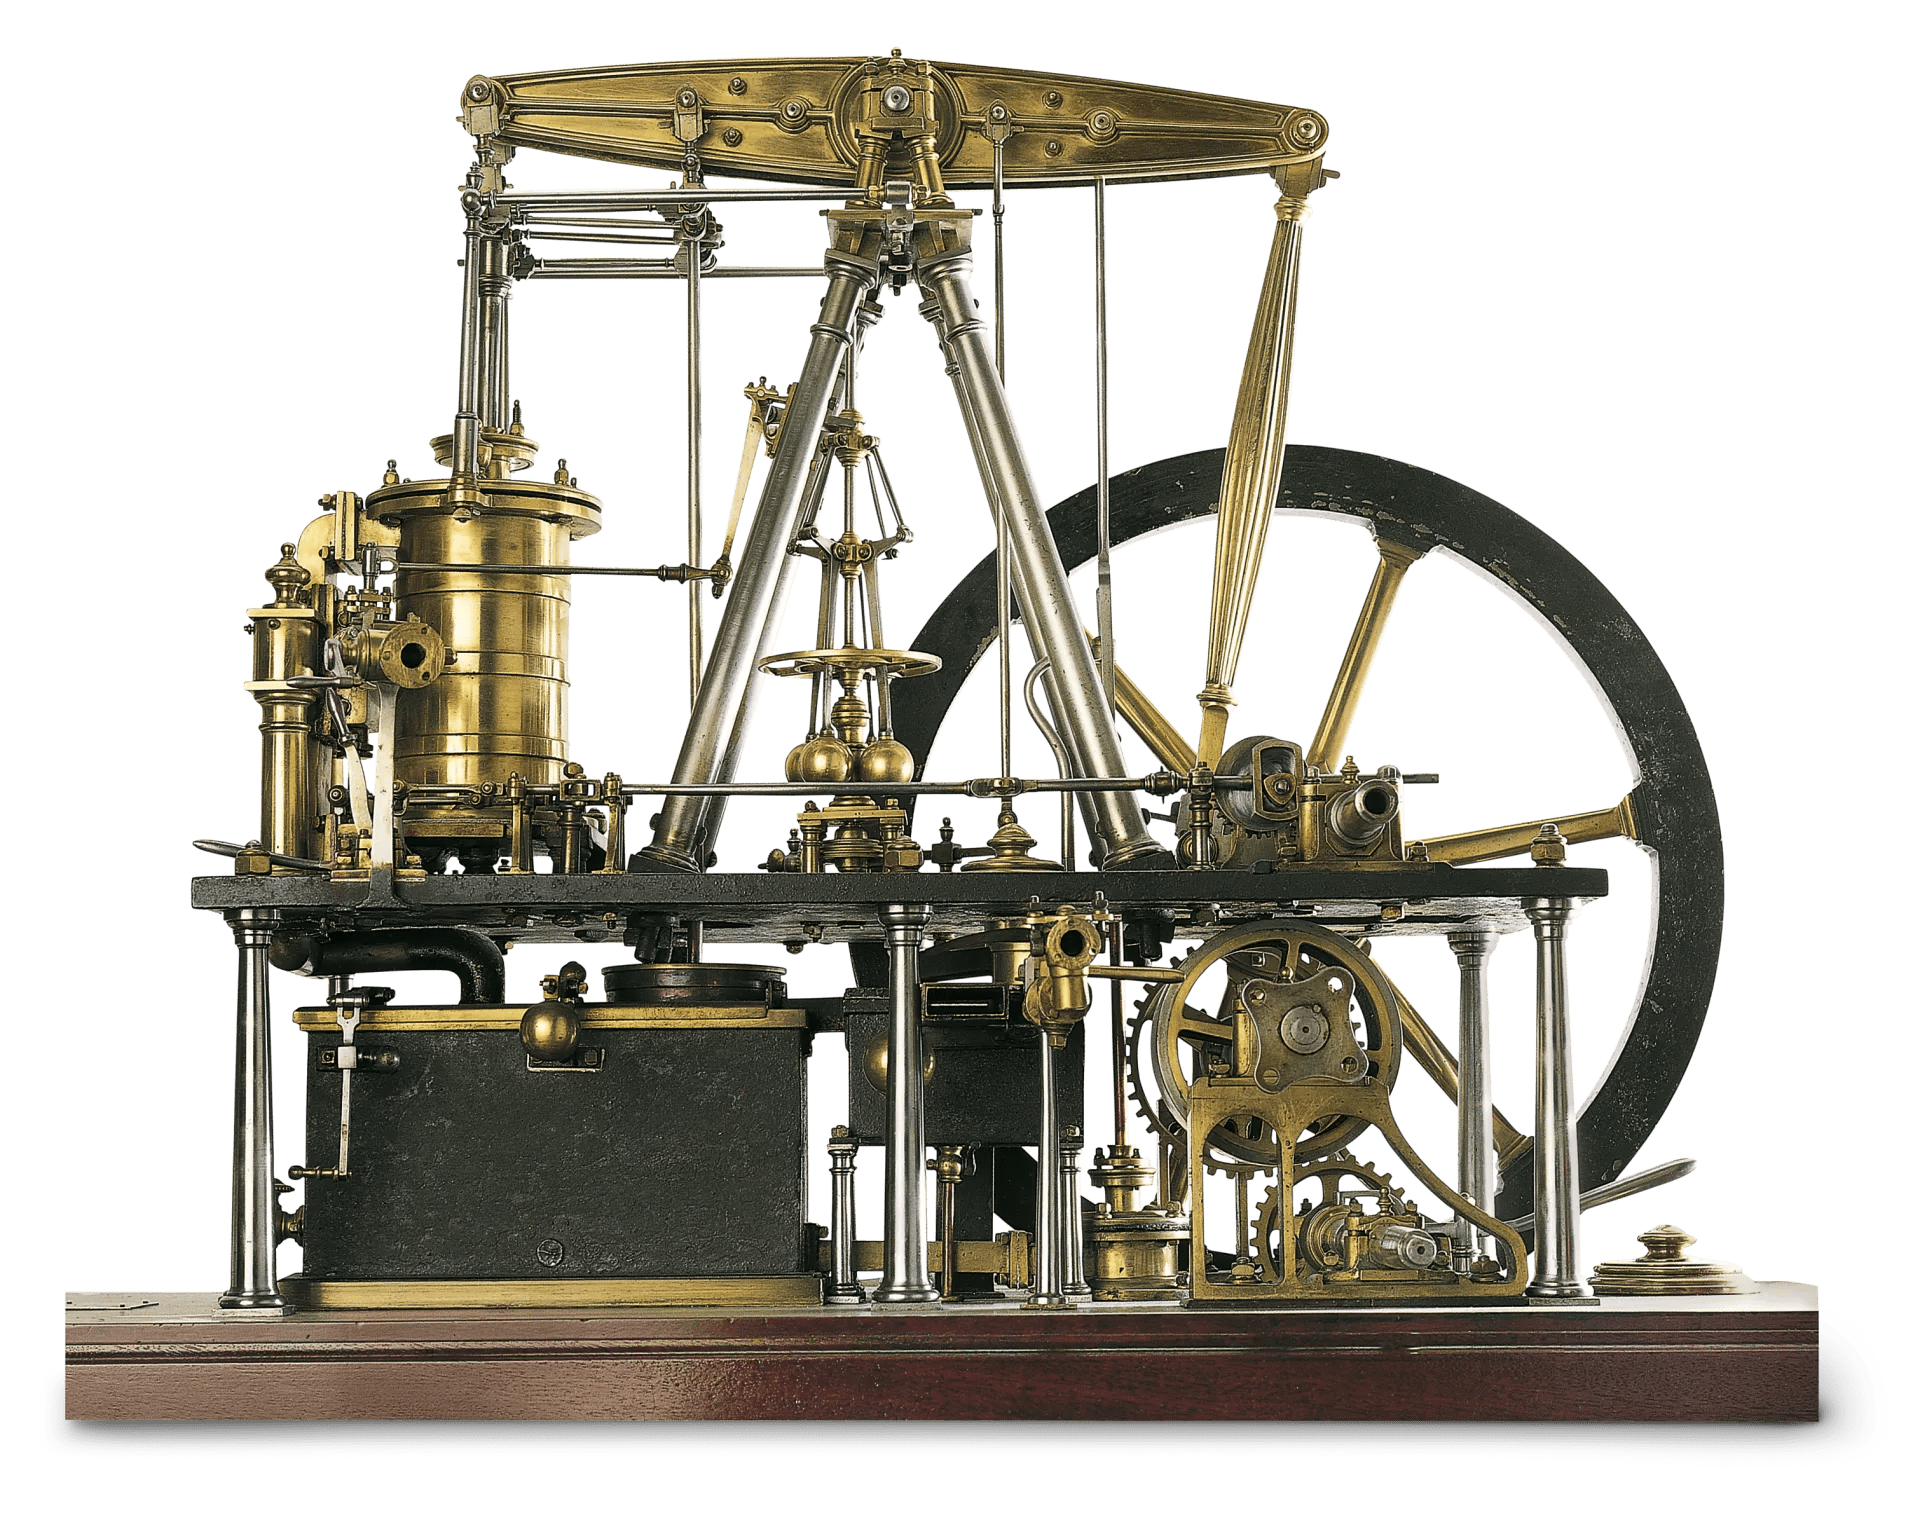 The Dialectical Relationship Between The Steam Engine And